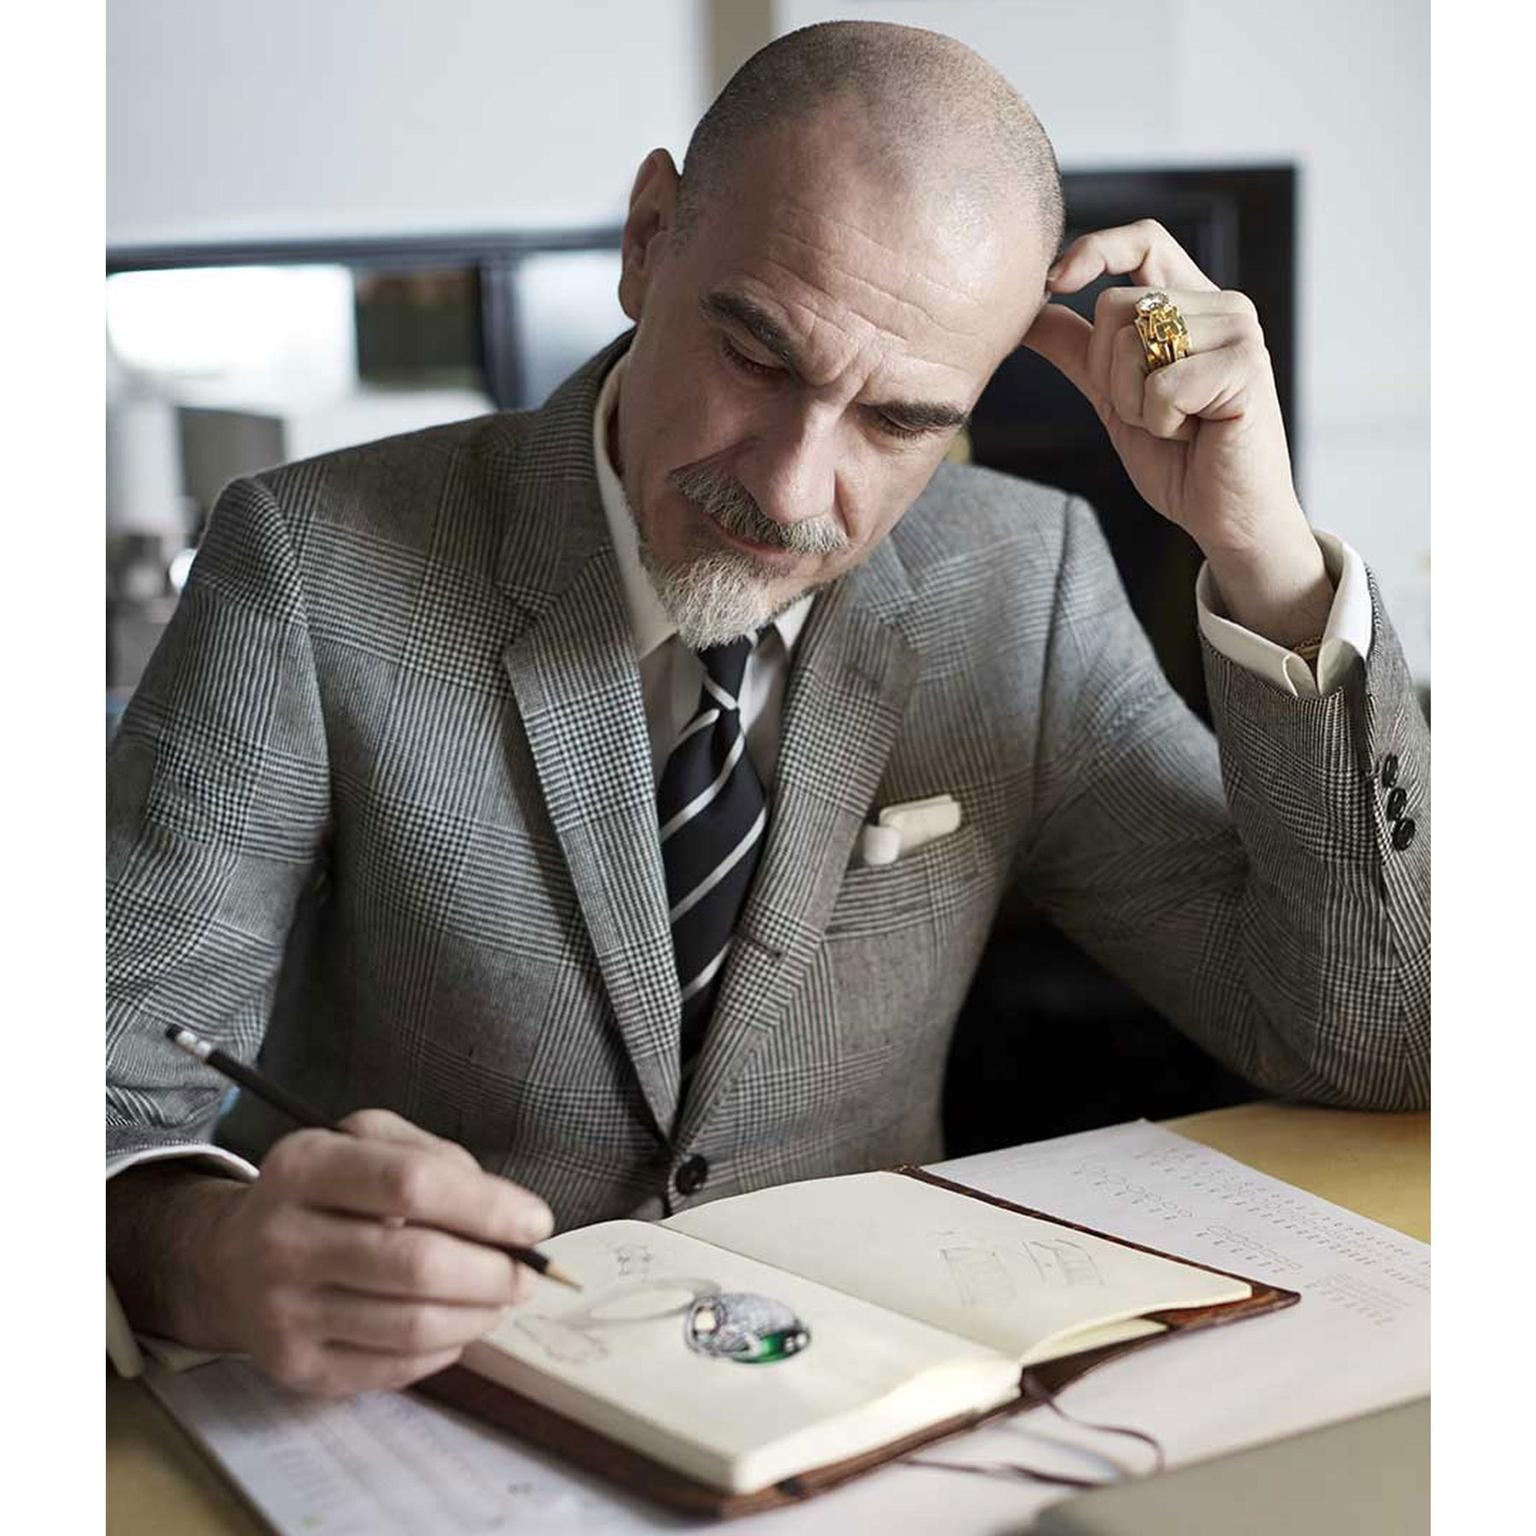 Giampiero Bodino sketching: a master at work